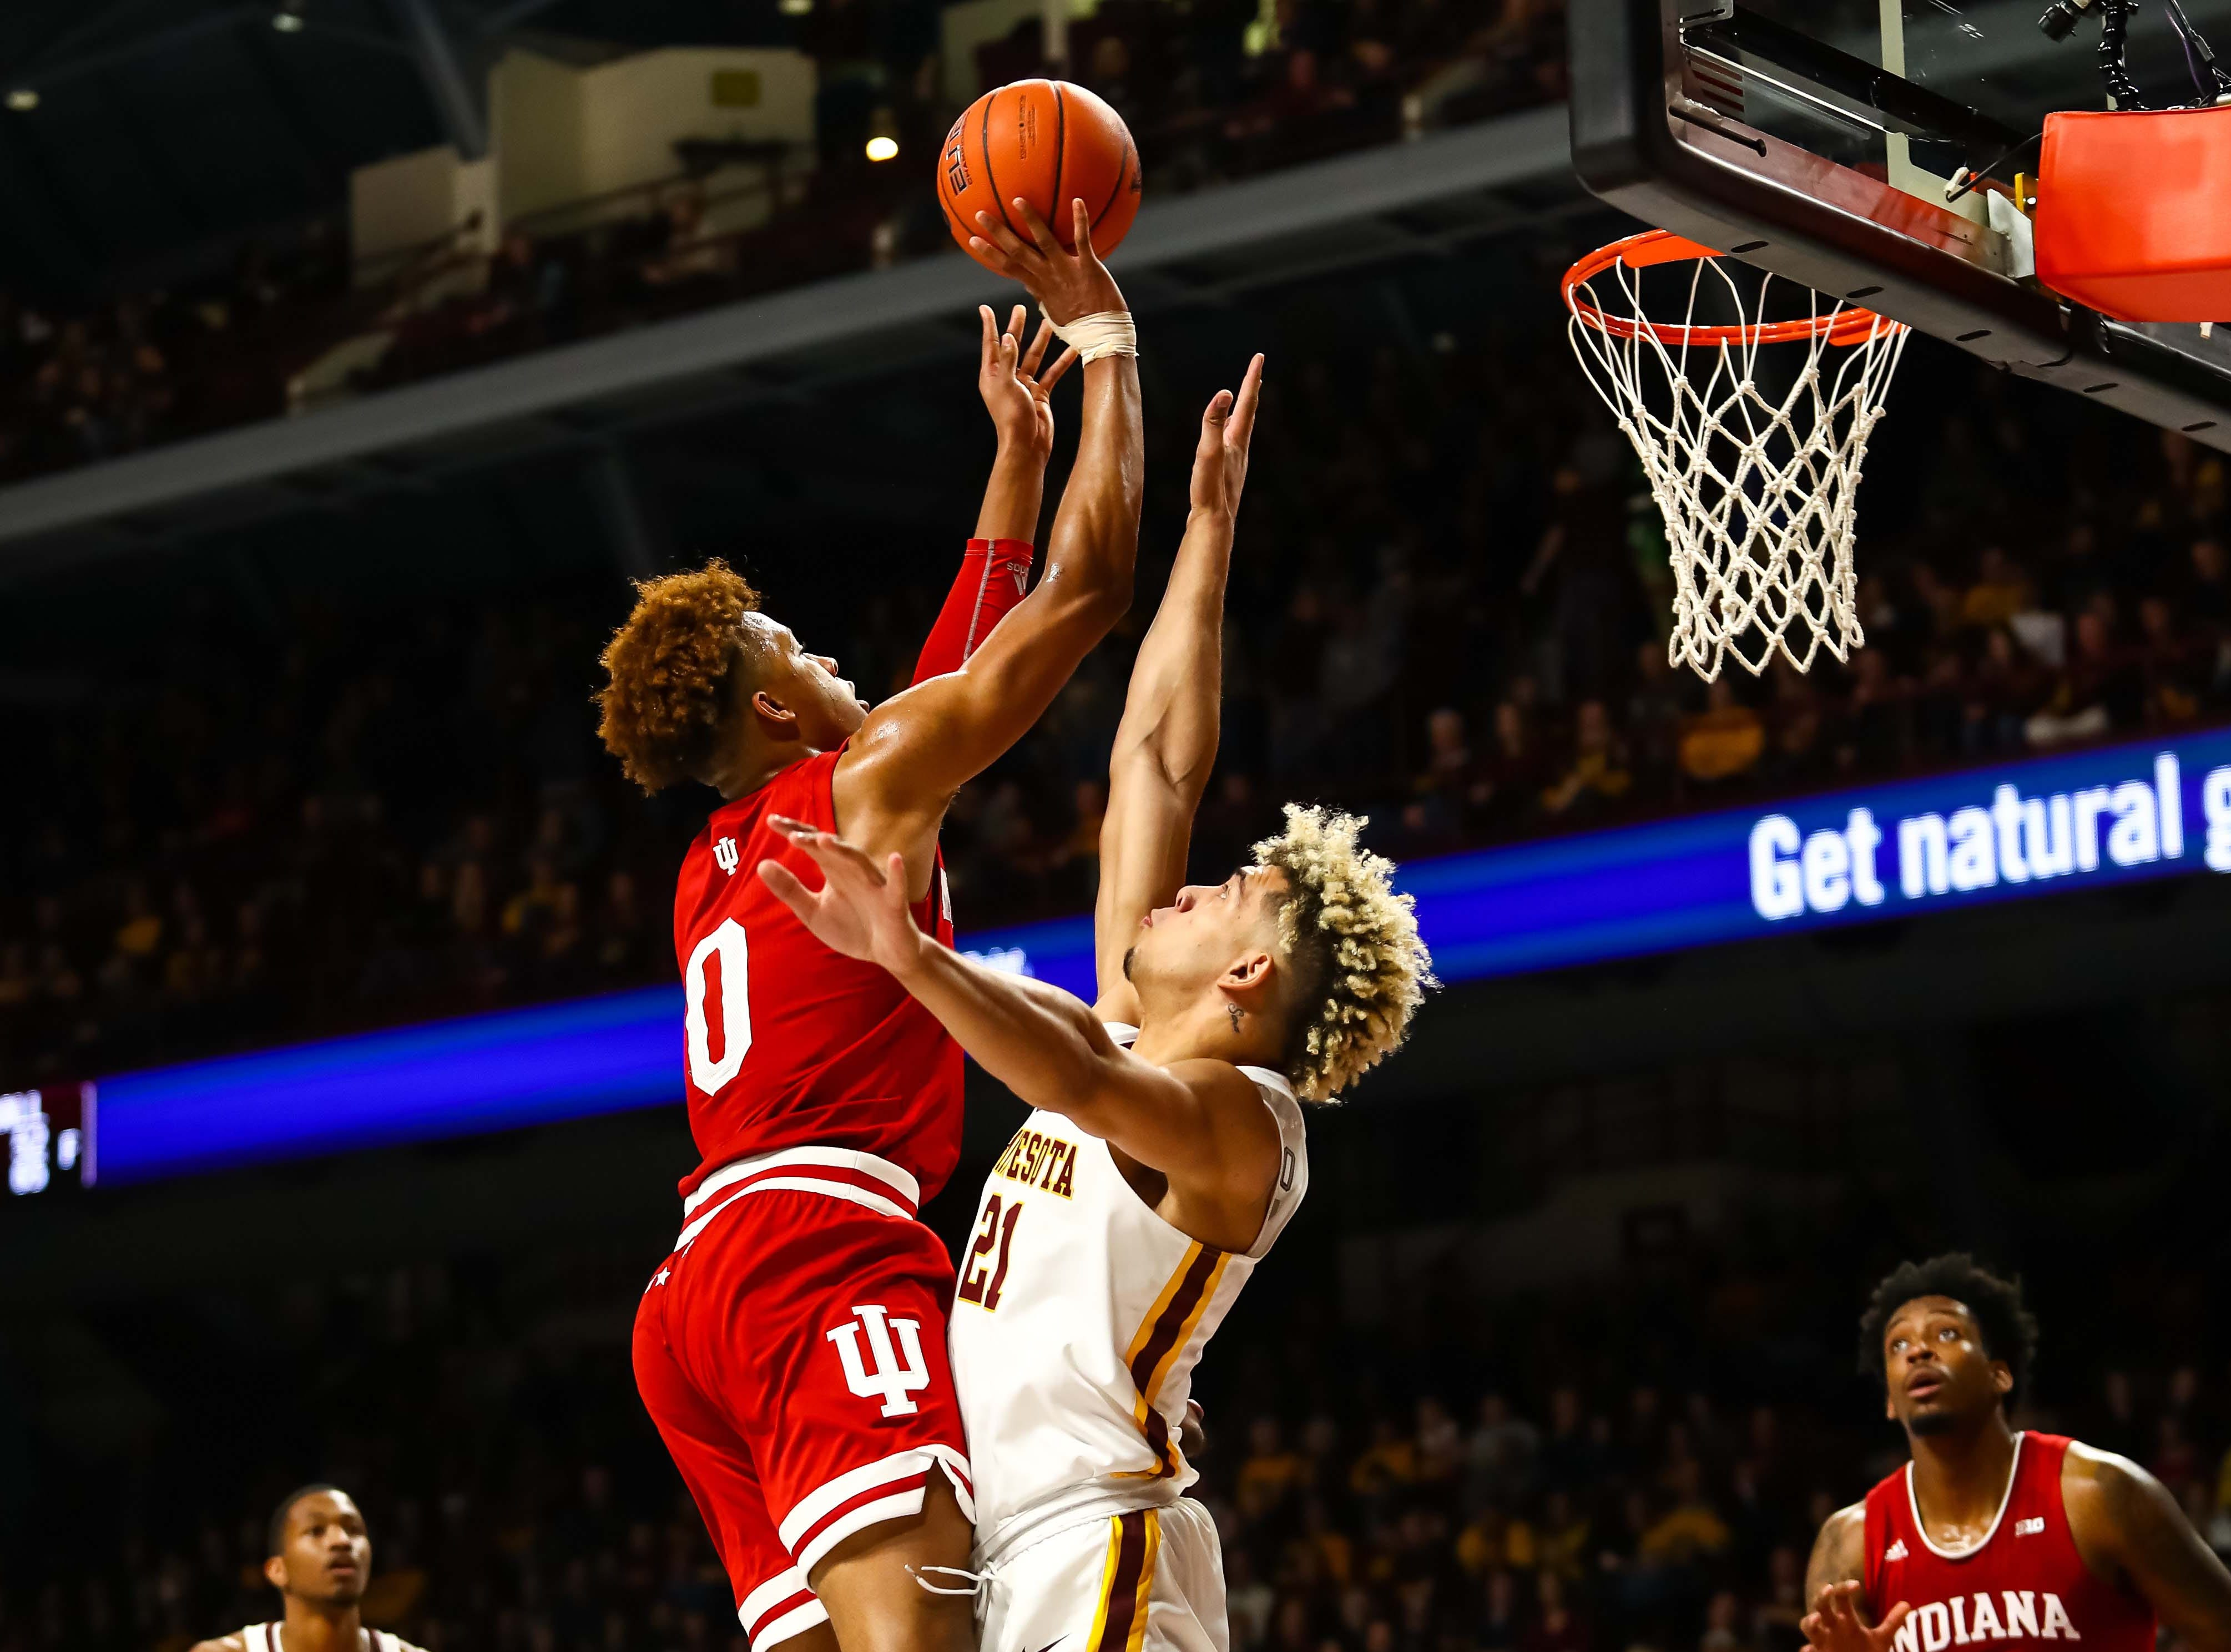 Feb 16, 2019; Minneapolis, MN, USA; Indiana Hoosiers guard Romeo Langford (0) goes up for a shot while Minnesota Golden Gophers forward Jarvis Omersa (21) defends in the second half at Williams Arena. The Minnesota Golden Gophers defeatd the Indiana Hoosiers 84-63. Mandatory Credit: David Berding-USA TODAY Sports